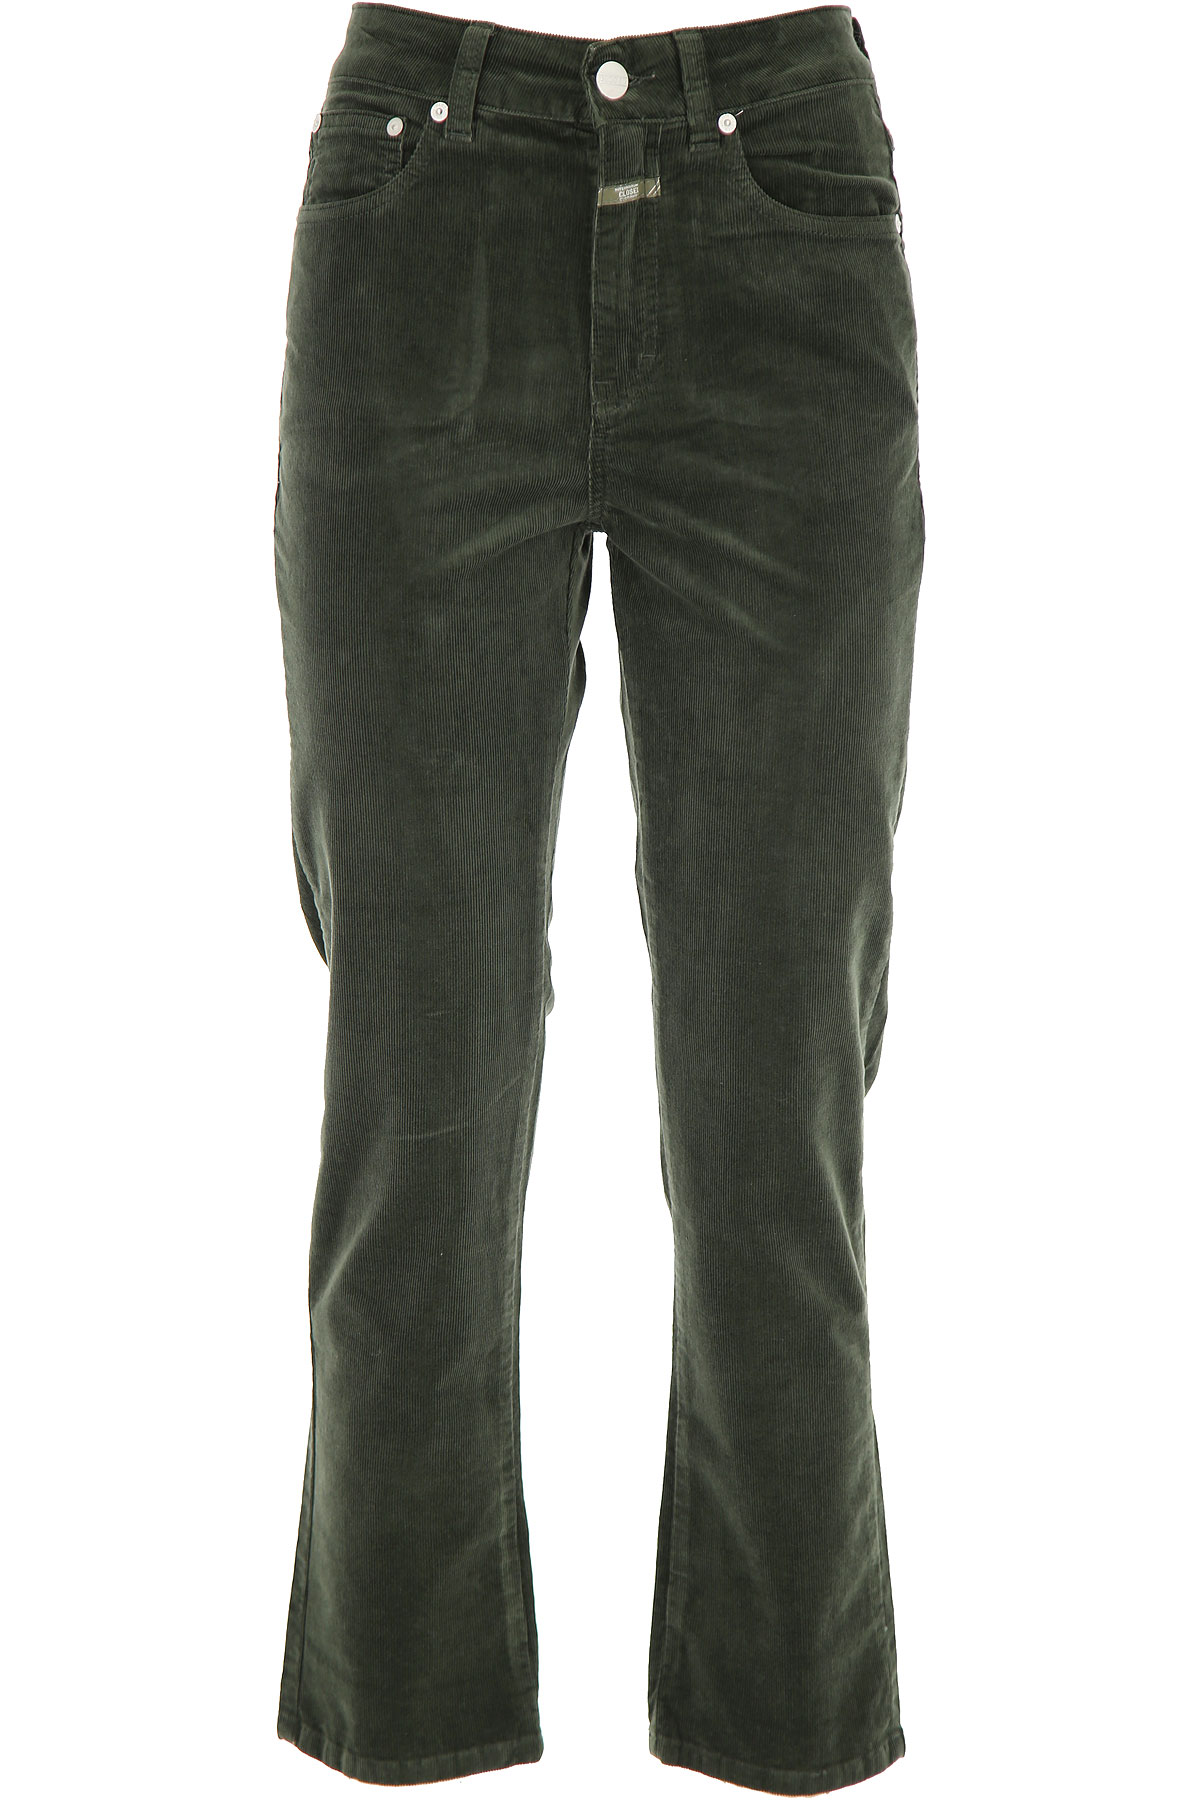 Closed Pants for Women On Sale, Caper Green, Cotton, 2019, 25 26 29 31